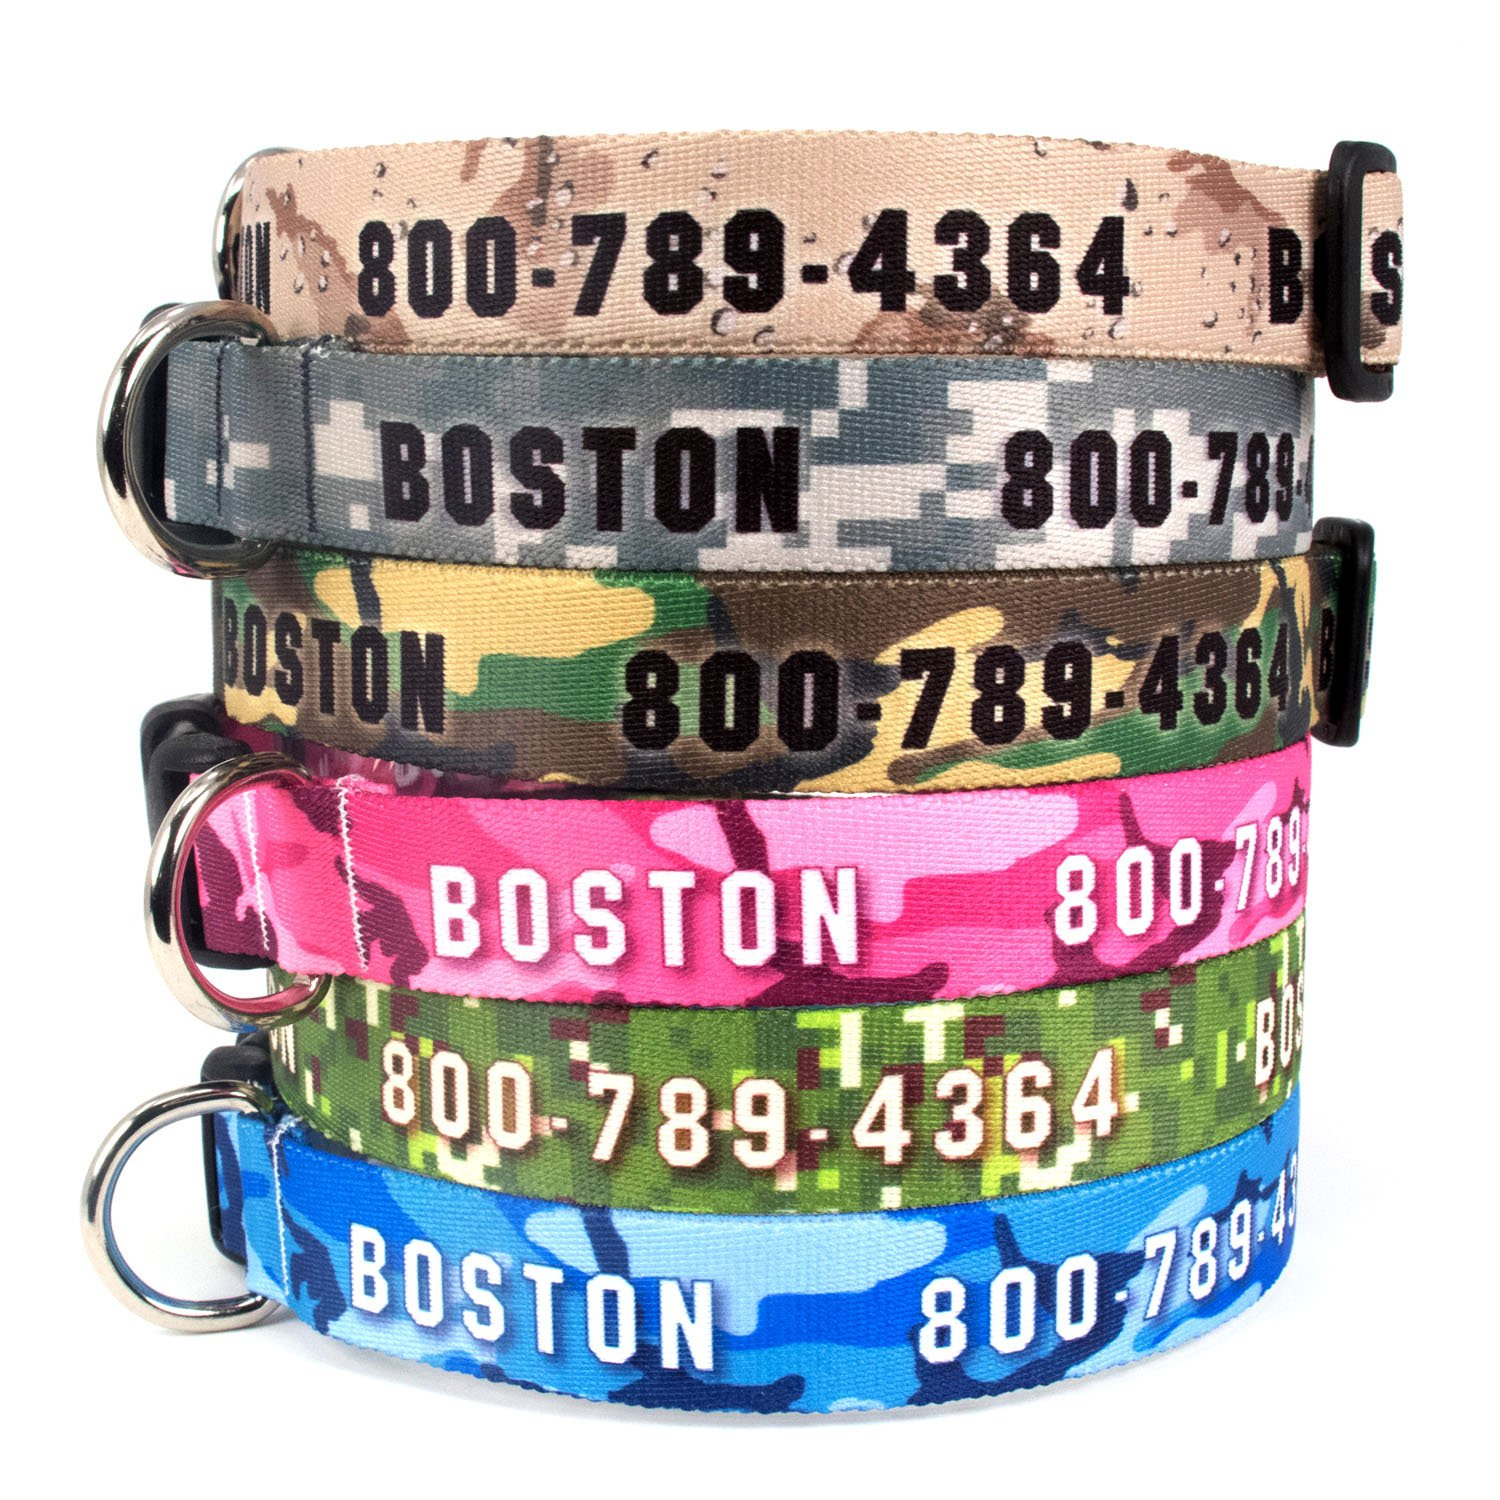 Buttonsmith Custom Personalized Camo Camouflage Dog Collar - Permanently Bonded Printing Process, Military Grade Rustproof Buckle, Resistant to Odors & Mildew, Choice of 5 Sizes, 100% Made in USA